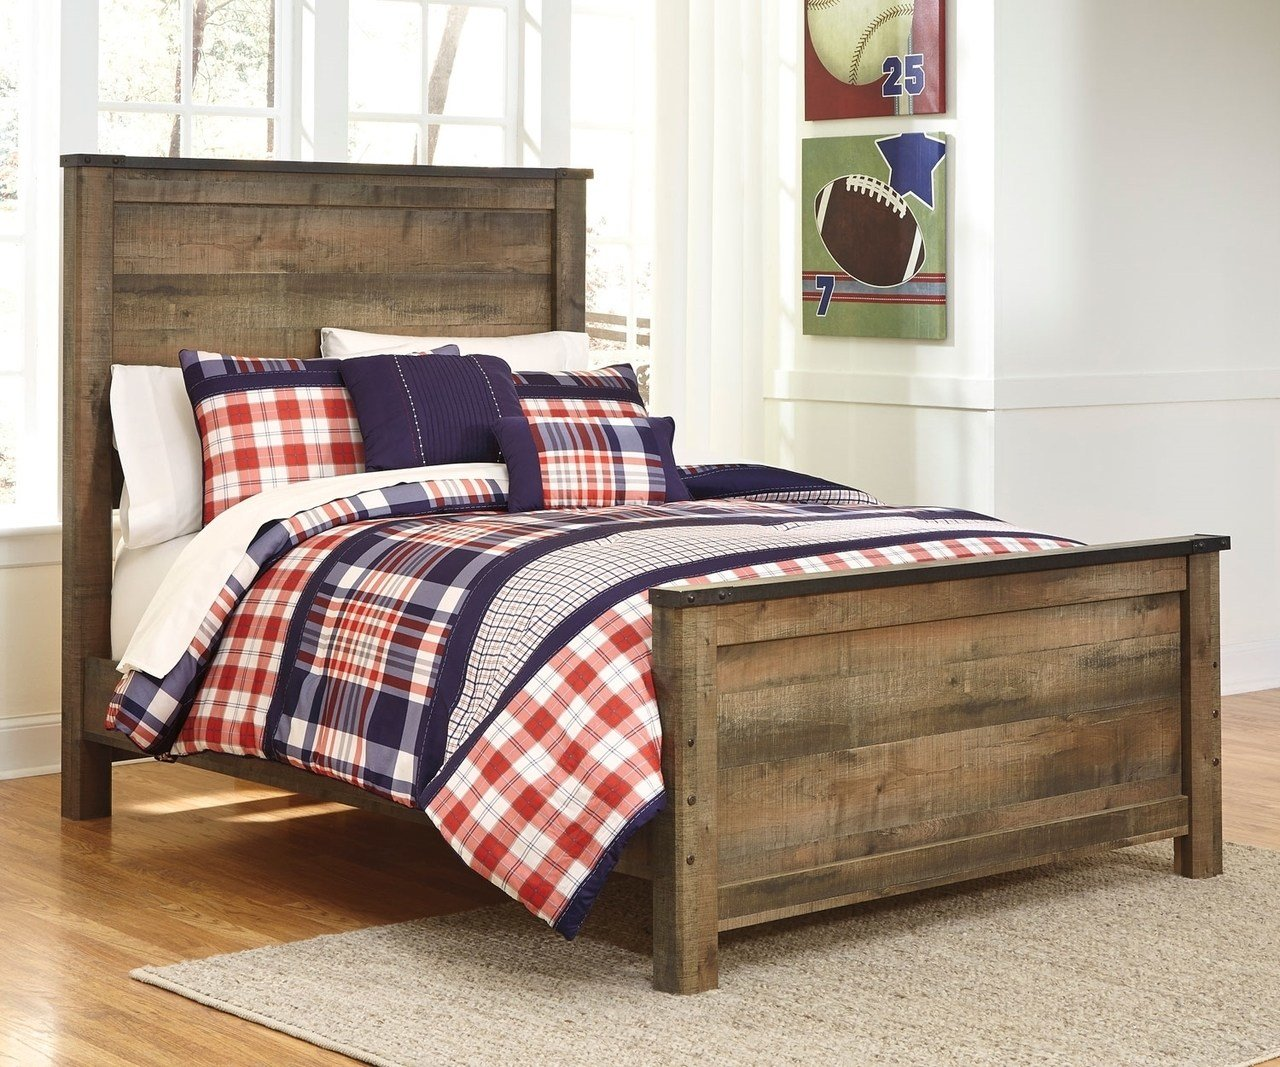 Best Trinell B446 Full Size Panel Bed Ashley Kids Furniture With Pictures